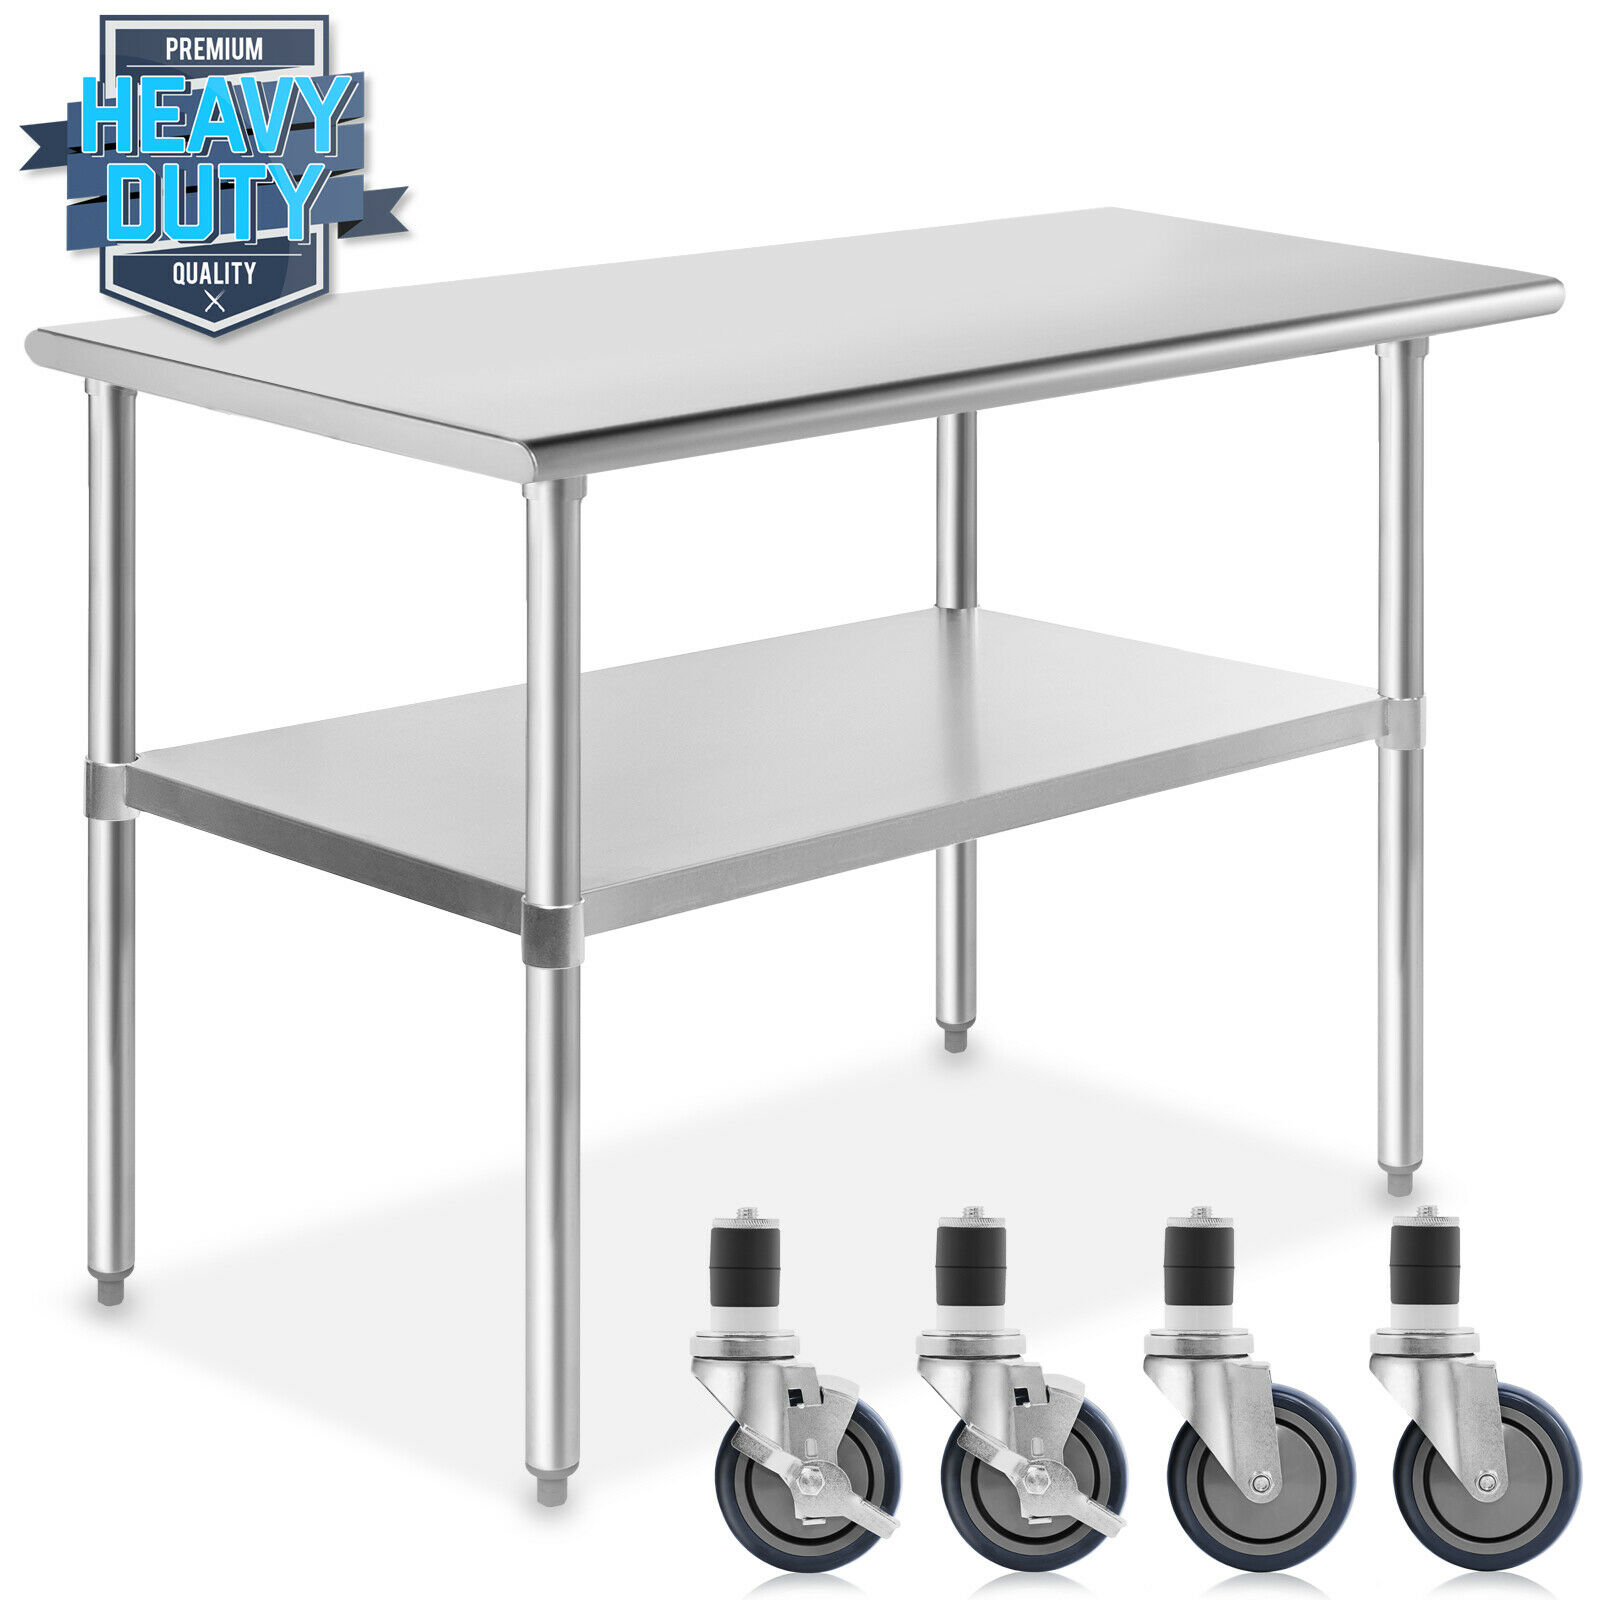 Stainless Steel Commercial Kitchen Work Food Prep Table W